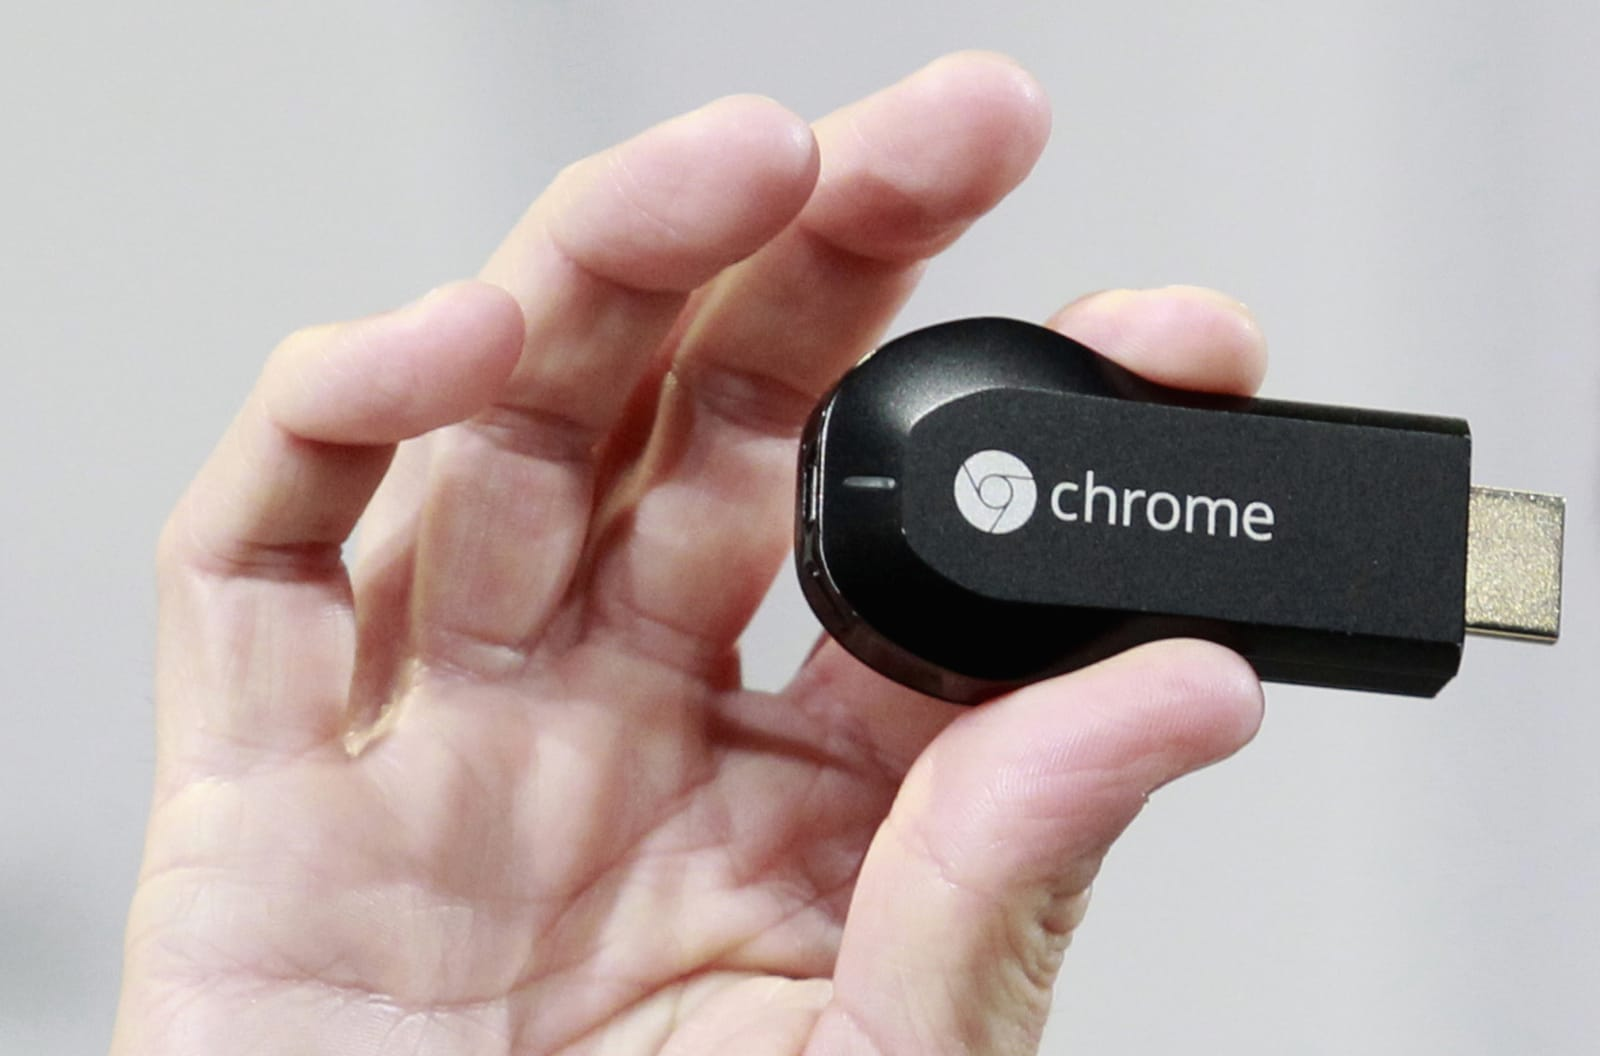 Five years later, the Chromecast still holds its own